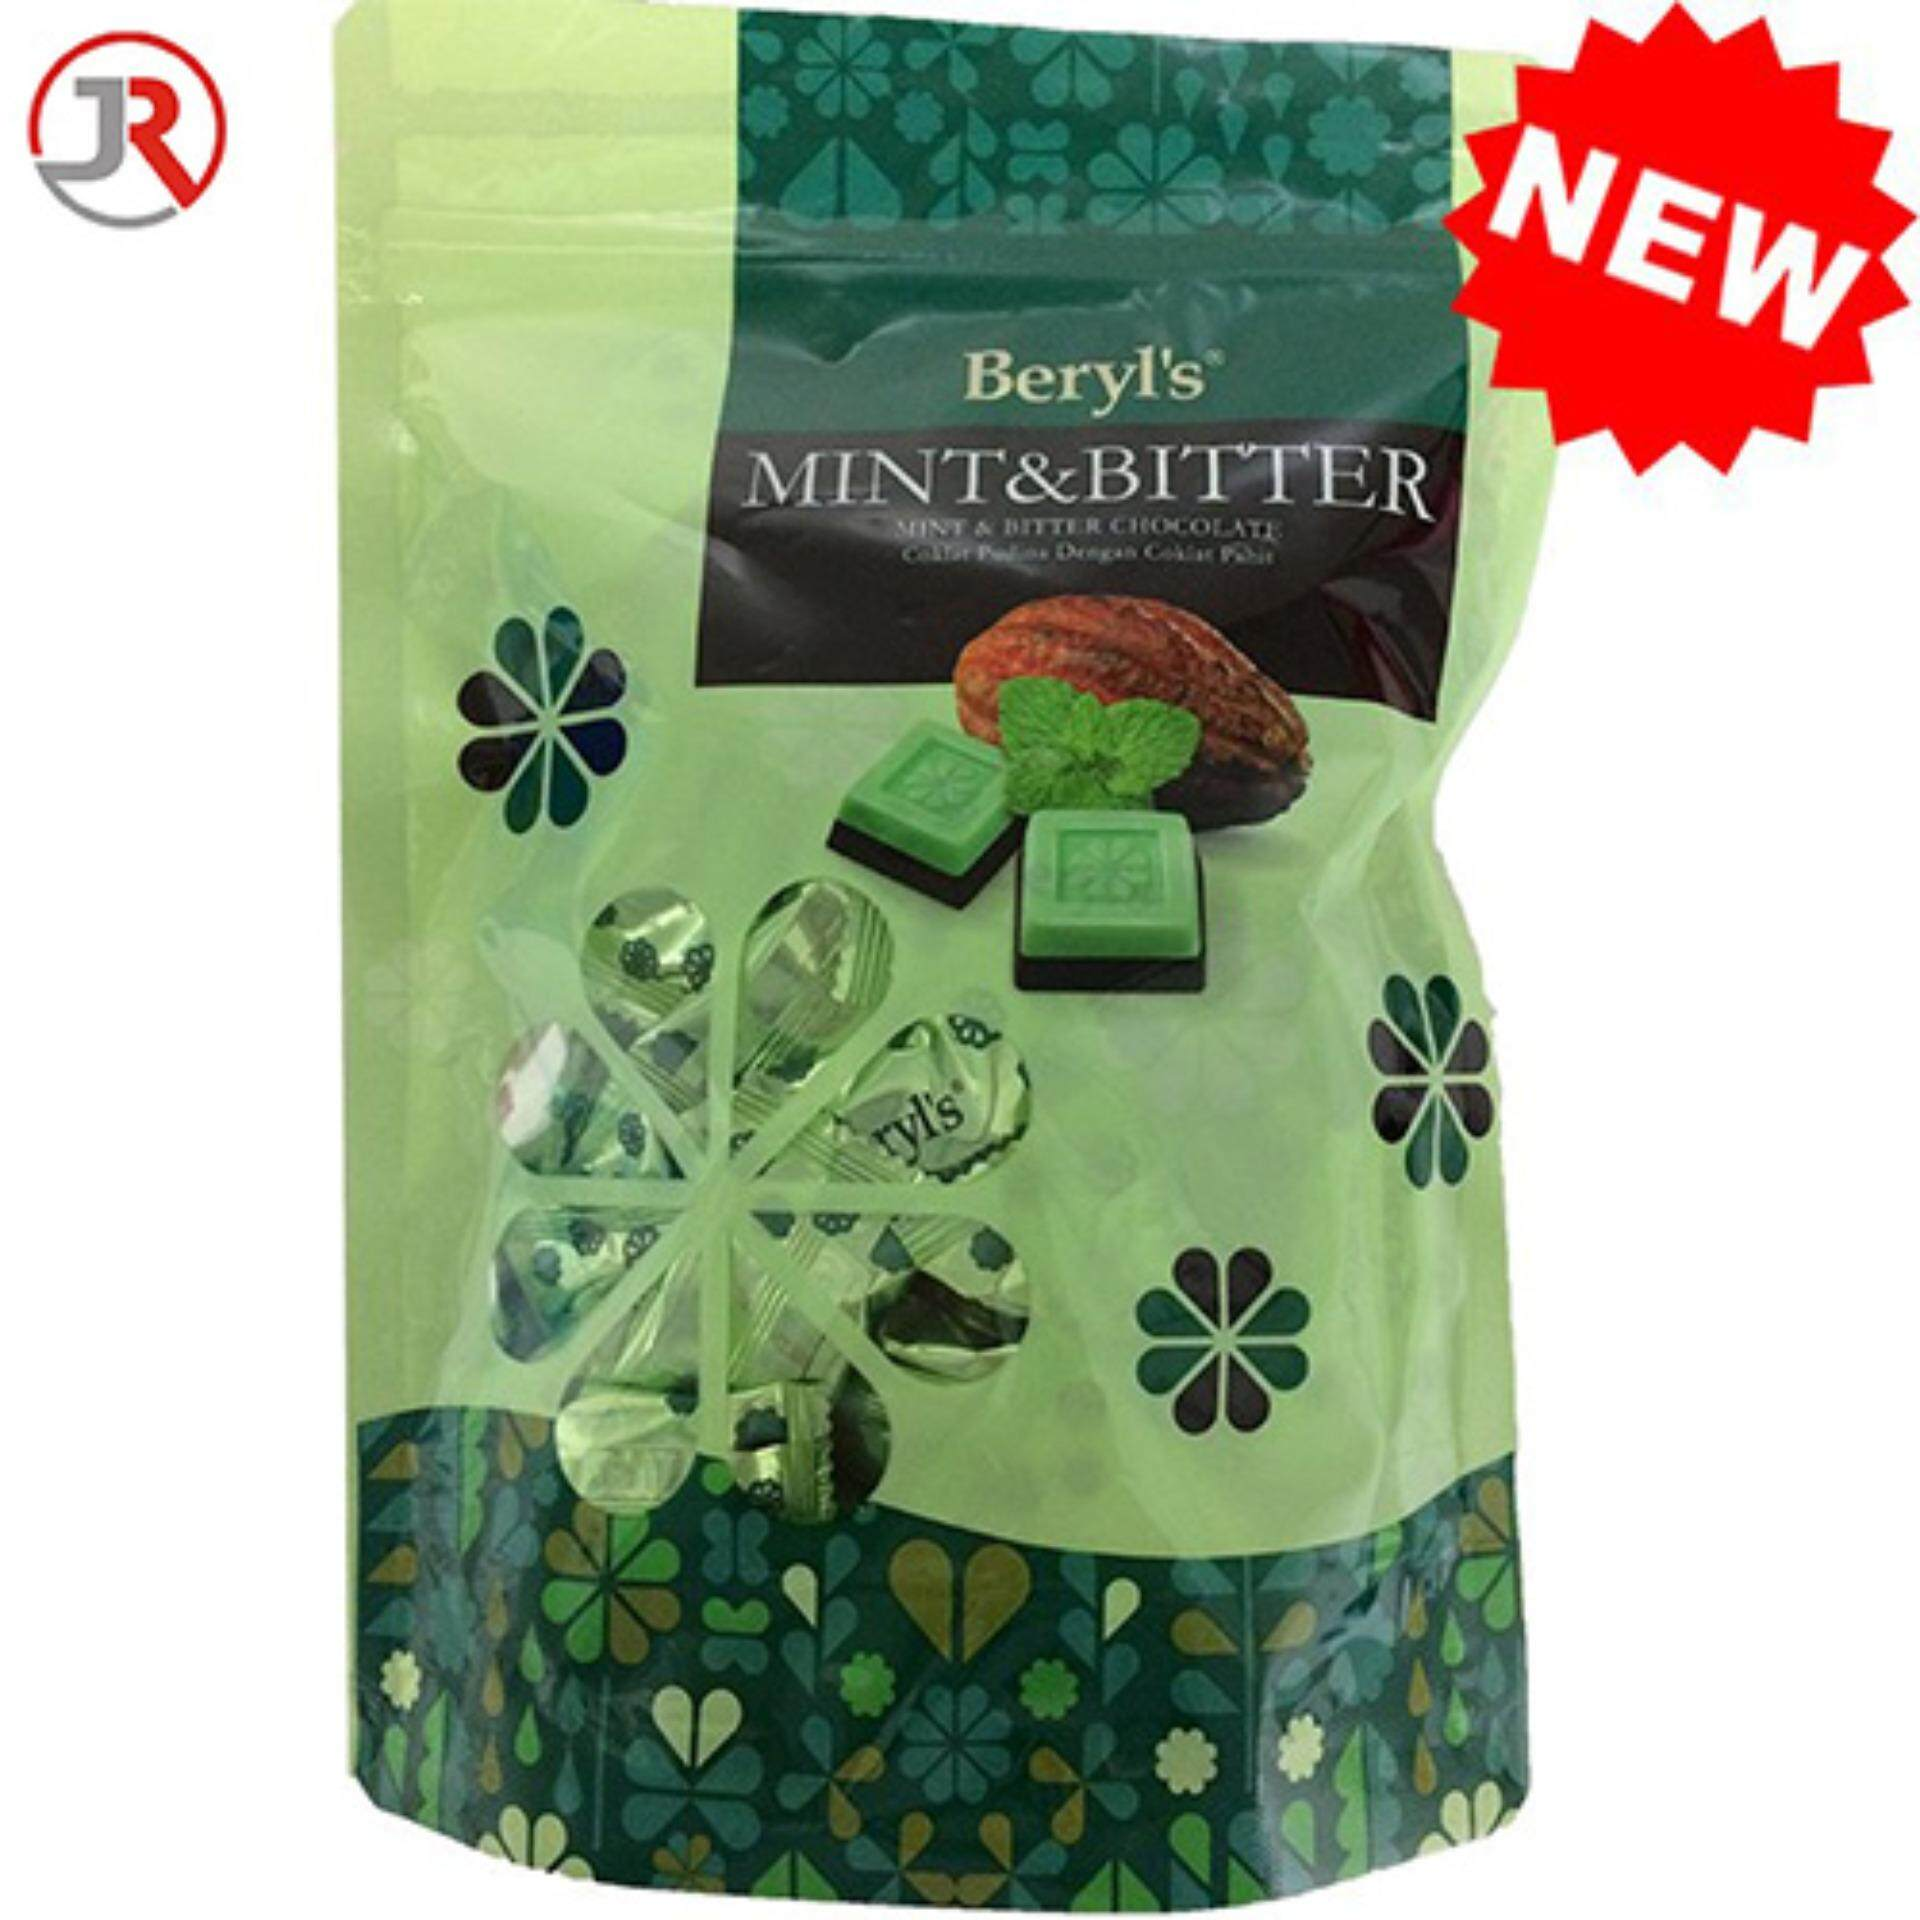 Nitchi Premium Wafer Sticks Paket 2 Kaleng Page 3 Daftar Update Source · Beryl s 280g Zip Pouch Mint & Bitter Chocolate